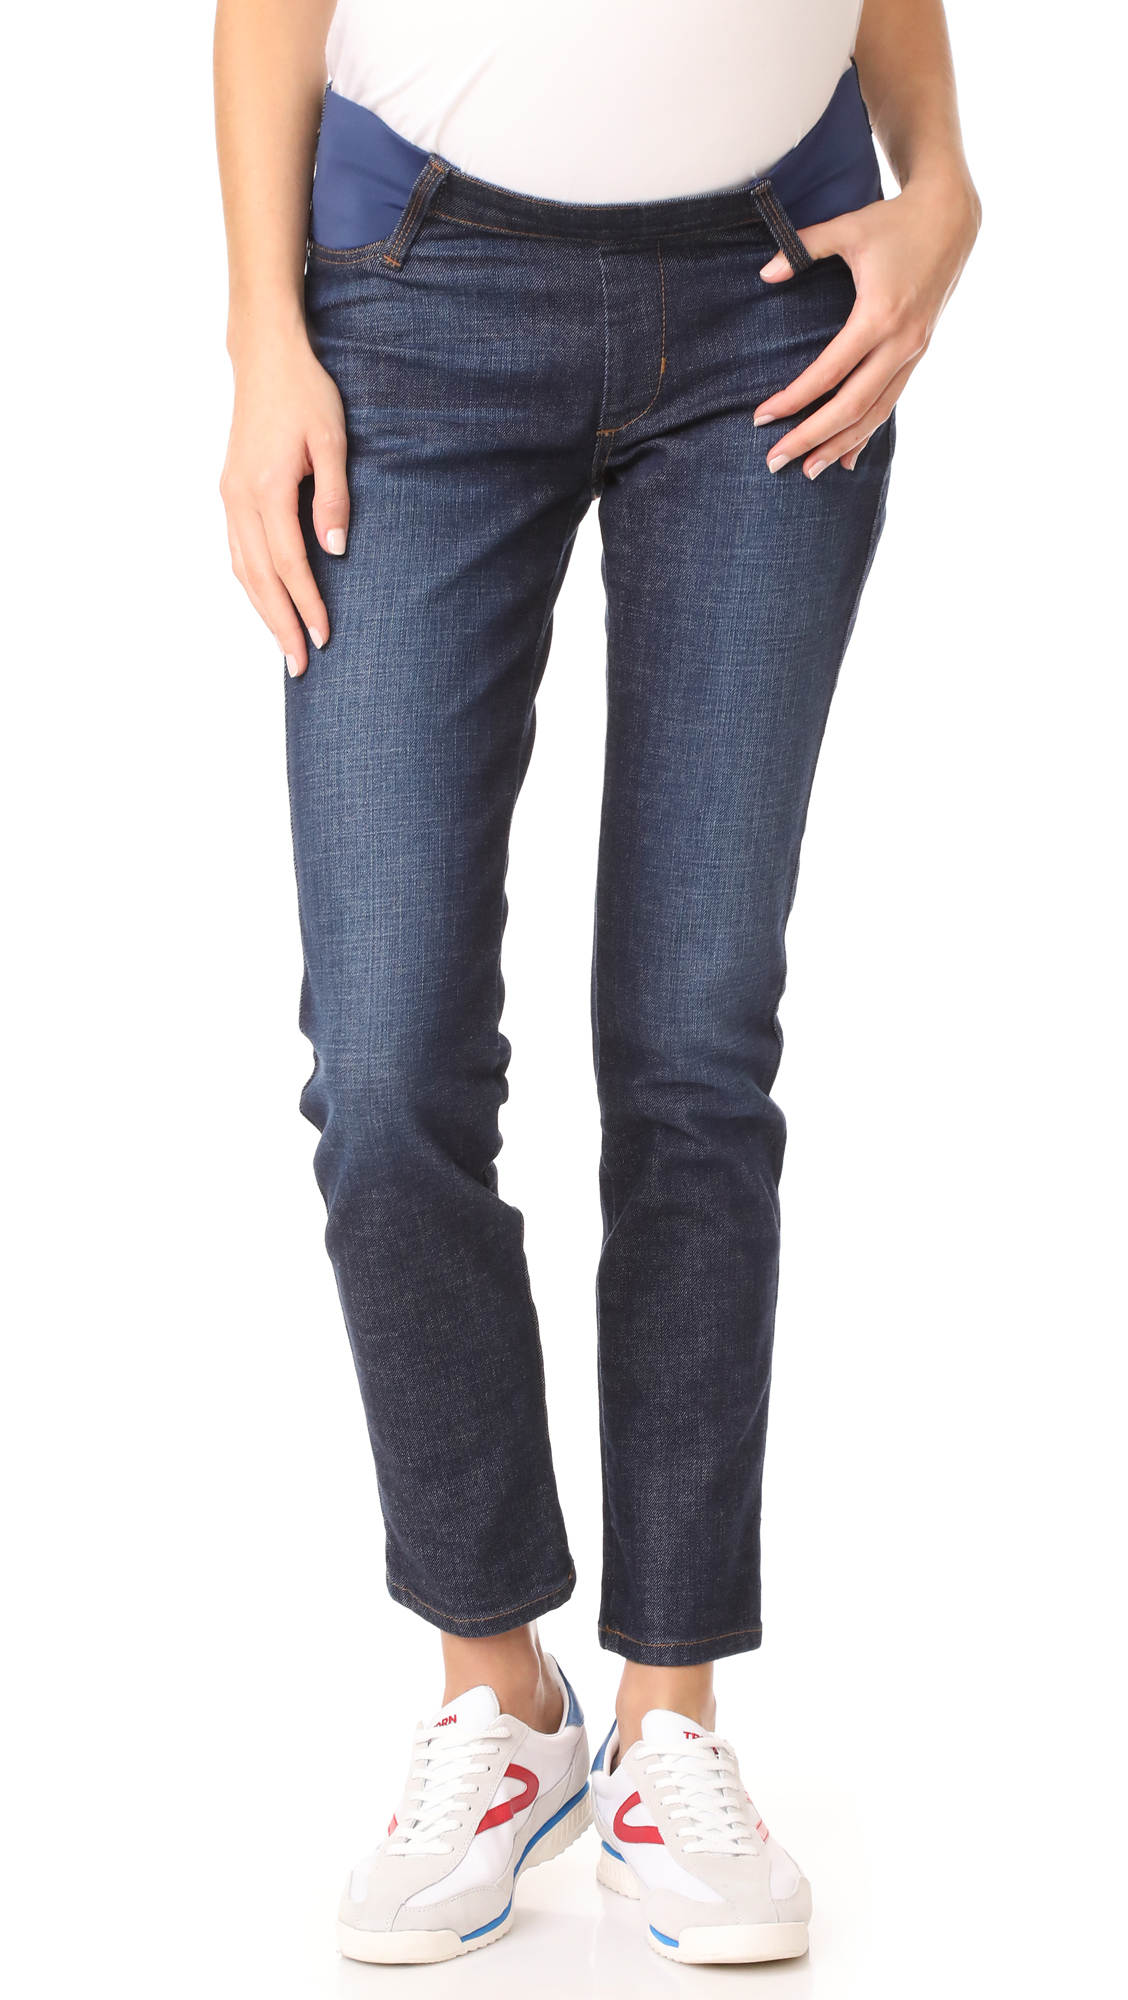 Neo Beau Slim BF Maternity Jeans